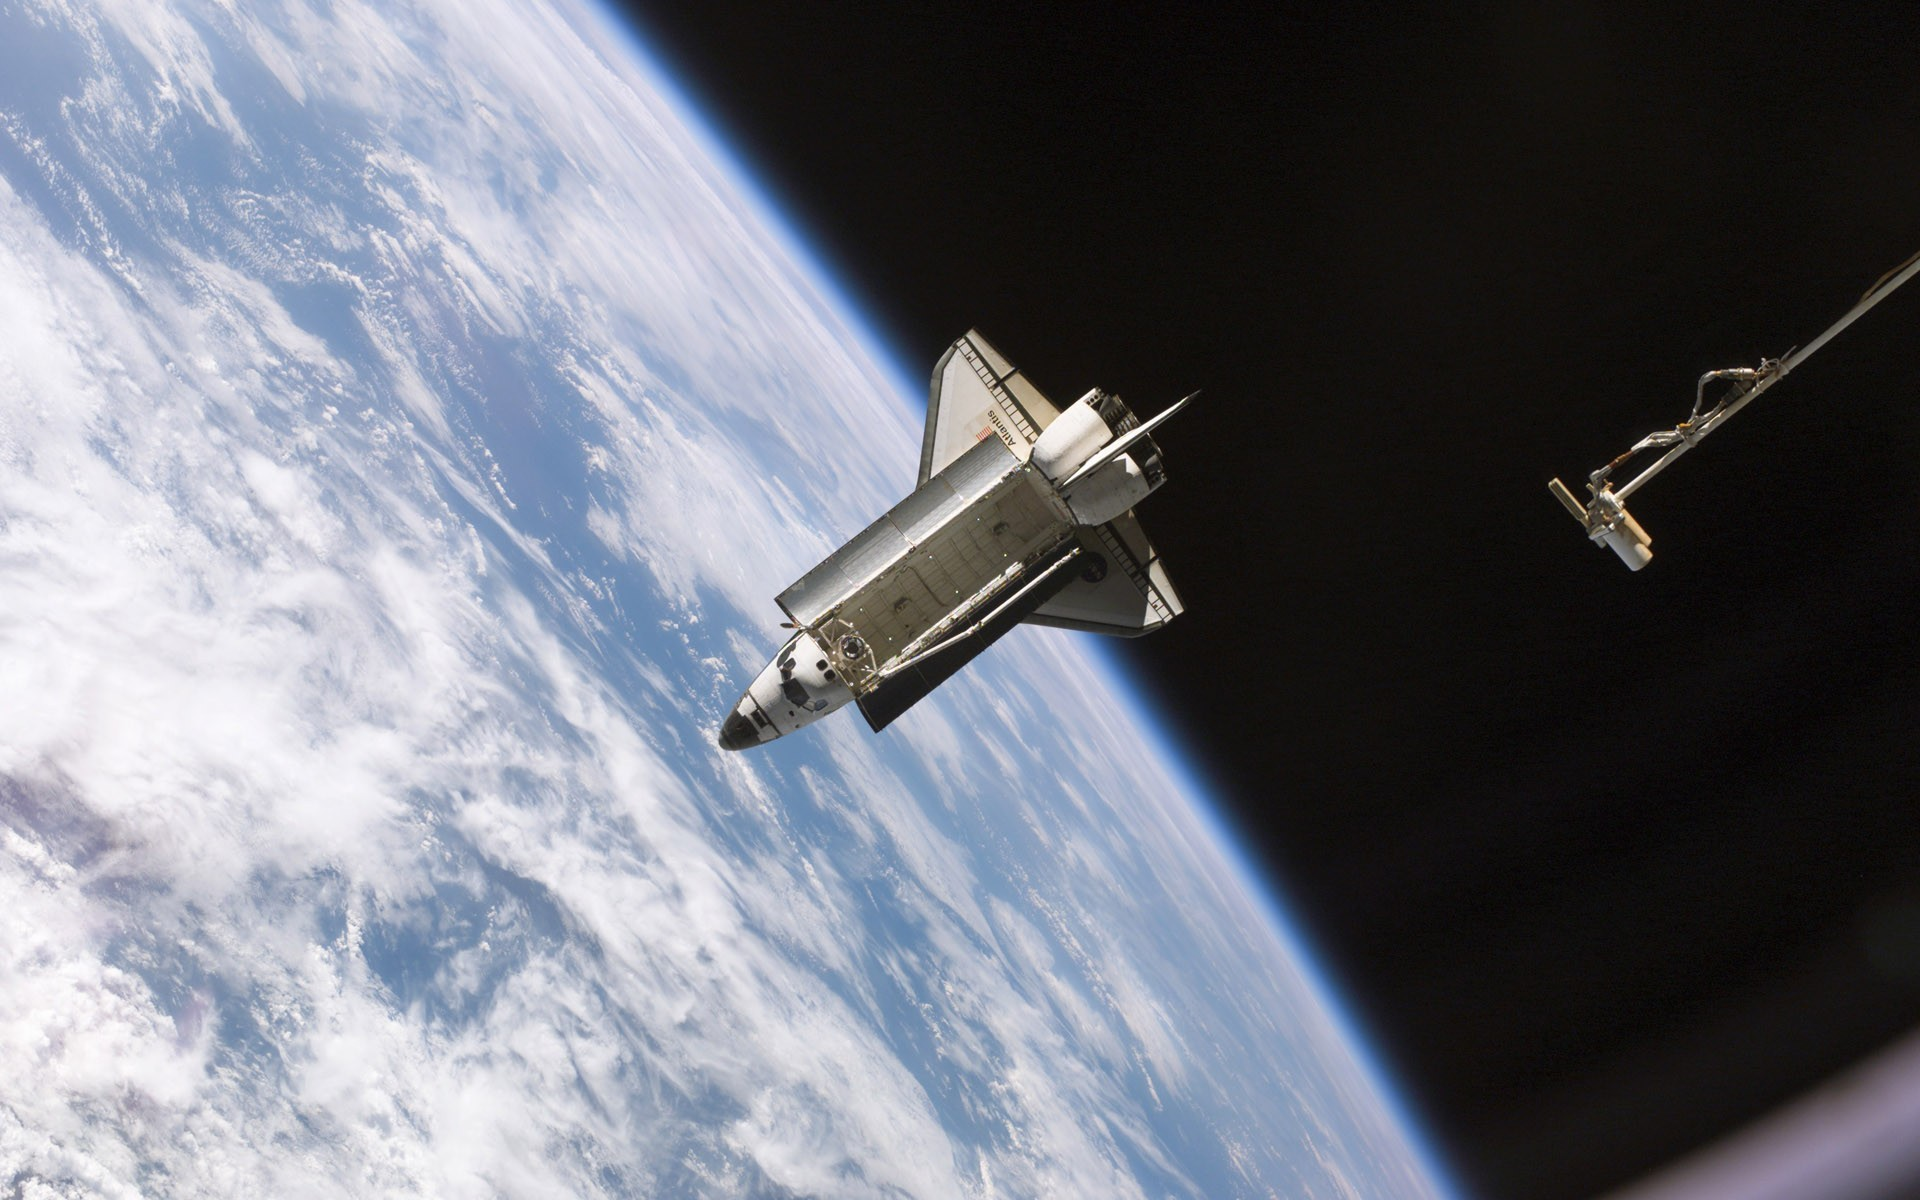 1920x1200 Pictures Space shuttle Atlantis, Nasa Ships